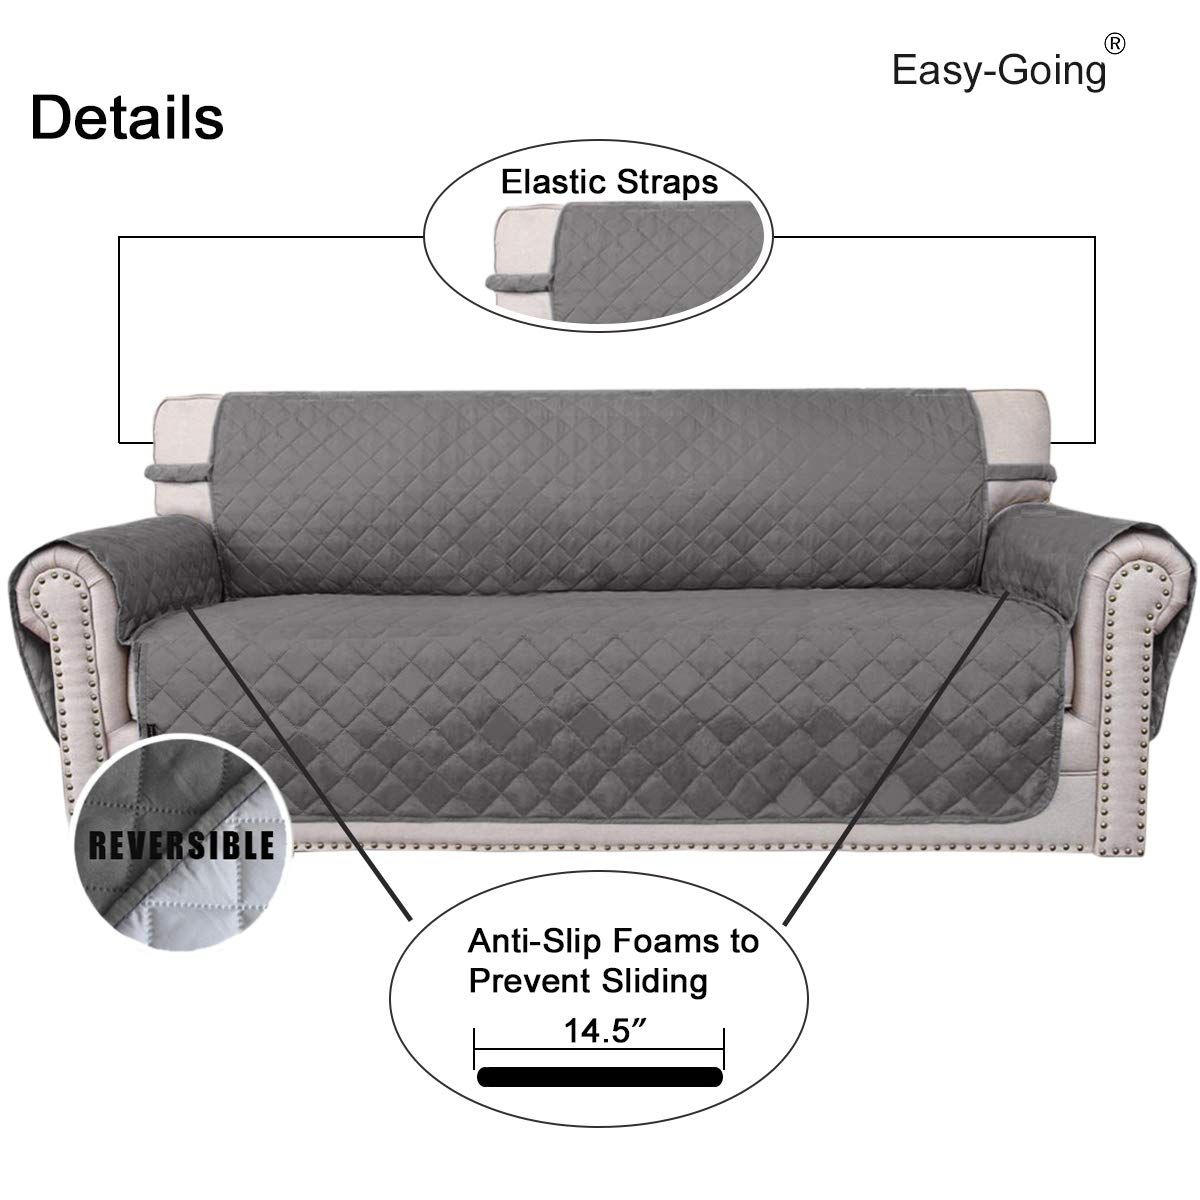 Easygoing Sofa Slipcover Reversible Sofa Cover Furniture Protector Antislip Foams Couch Shield Water Resistan Slipcovered Sofa Furniture Protectors Sofa Covers